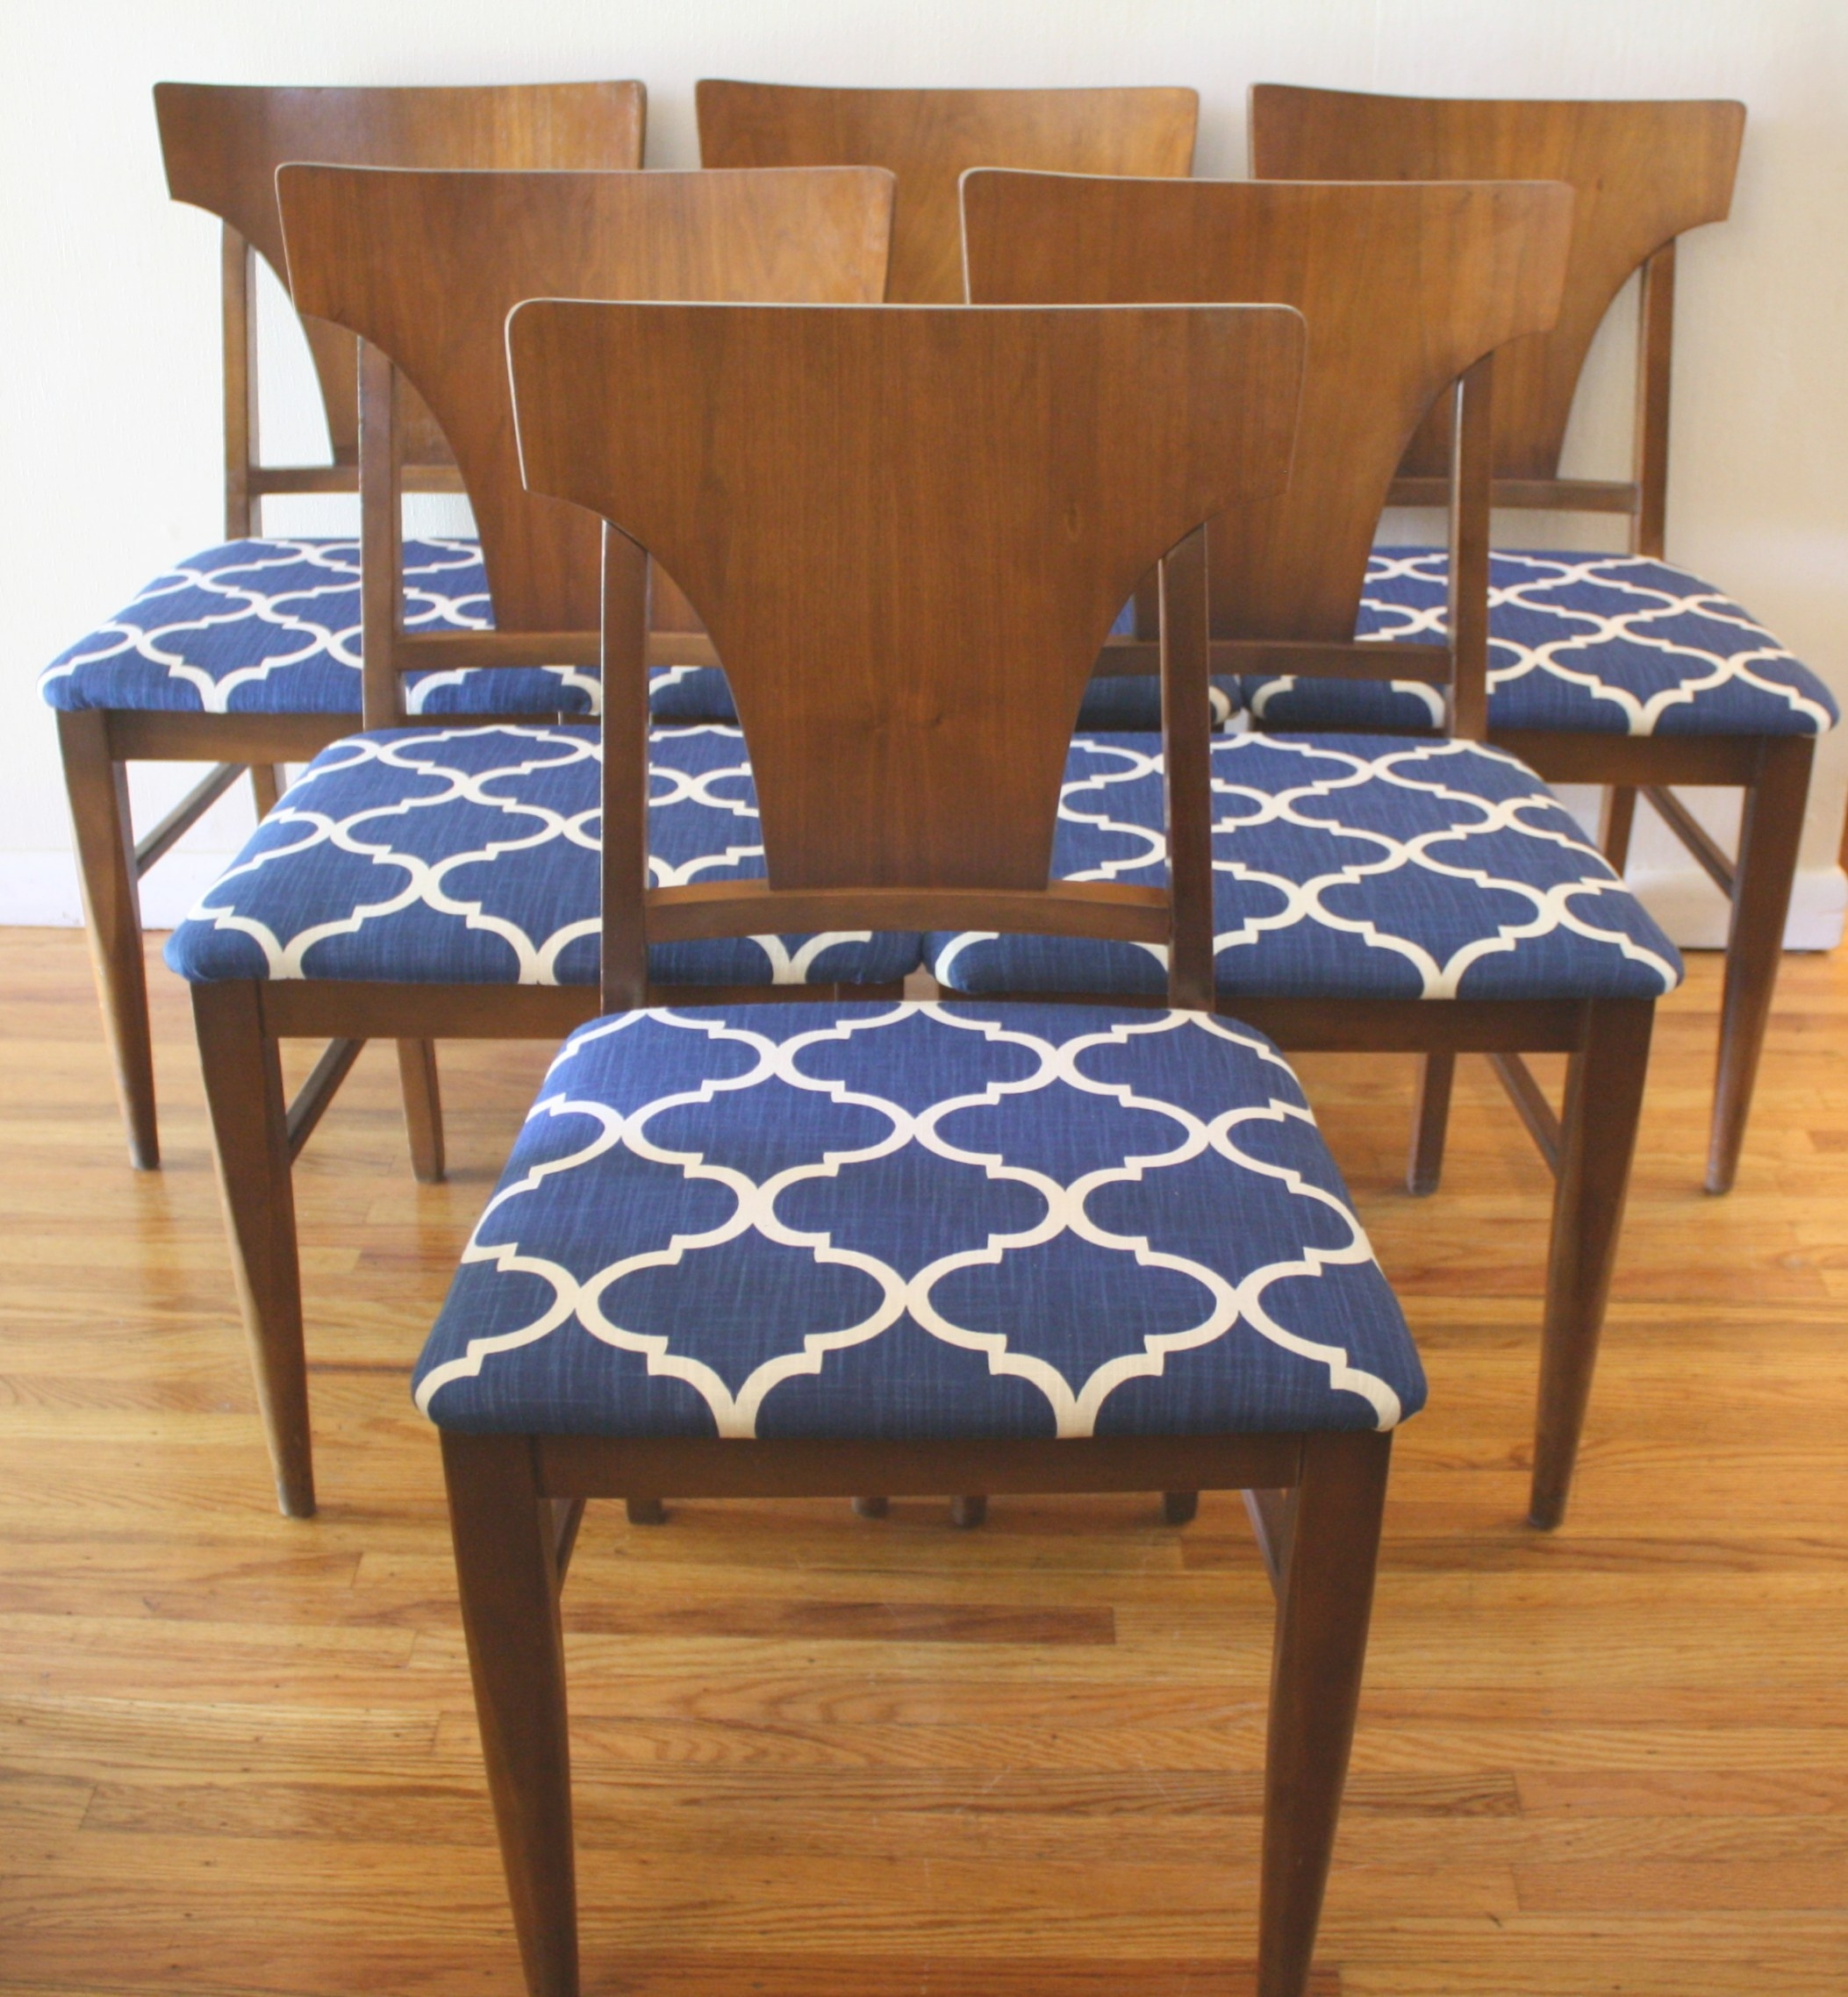 Mid Century Modern Sets Of Dining Chairs | Picked Vintage with Mid Century Modern Dining Set